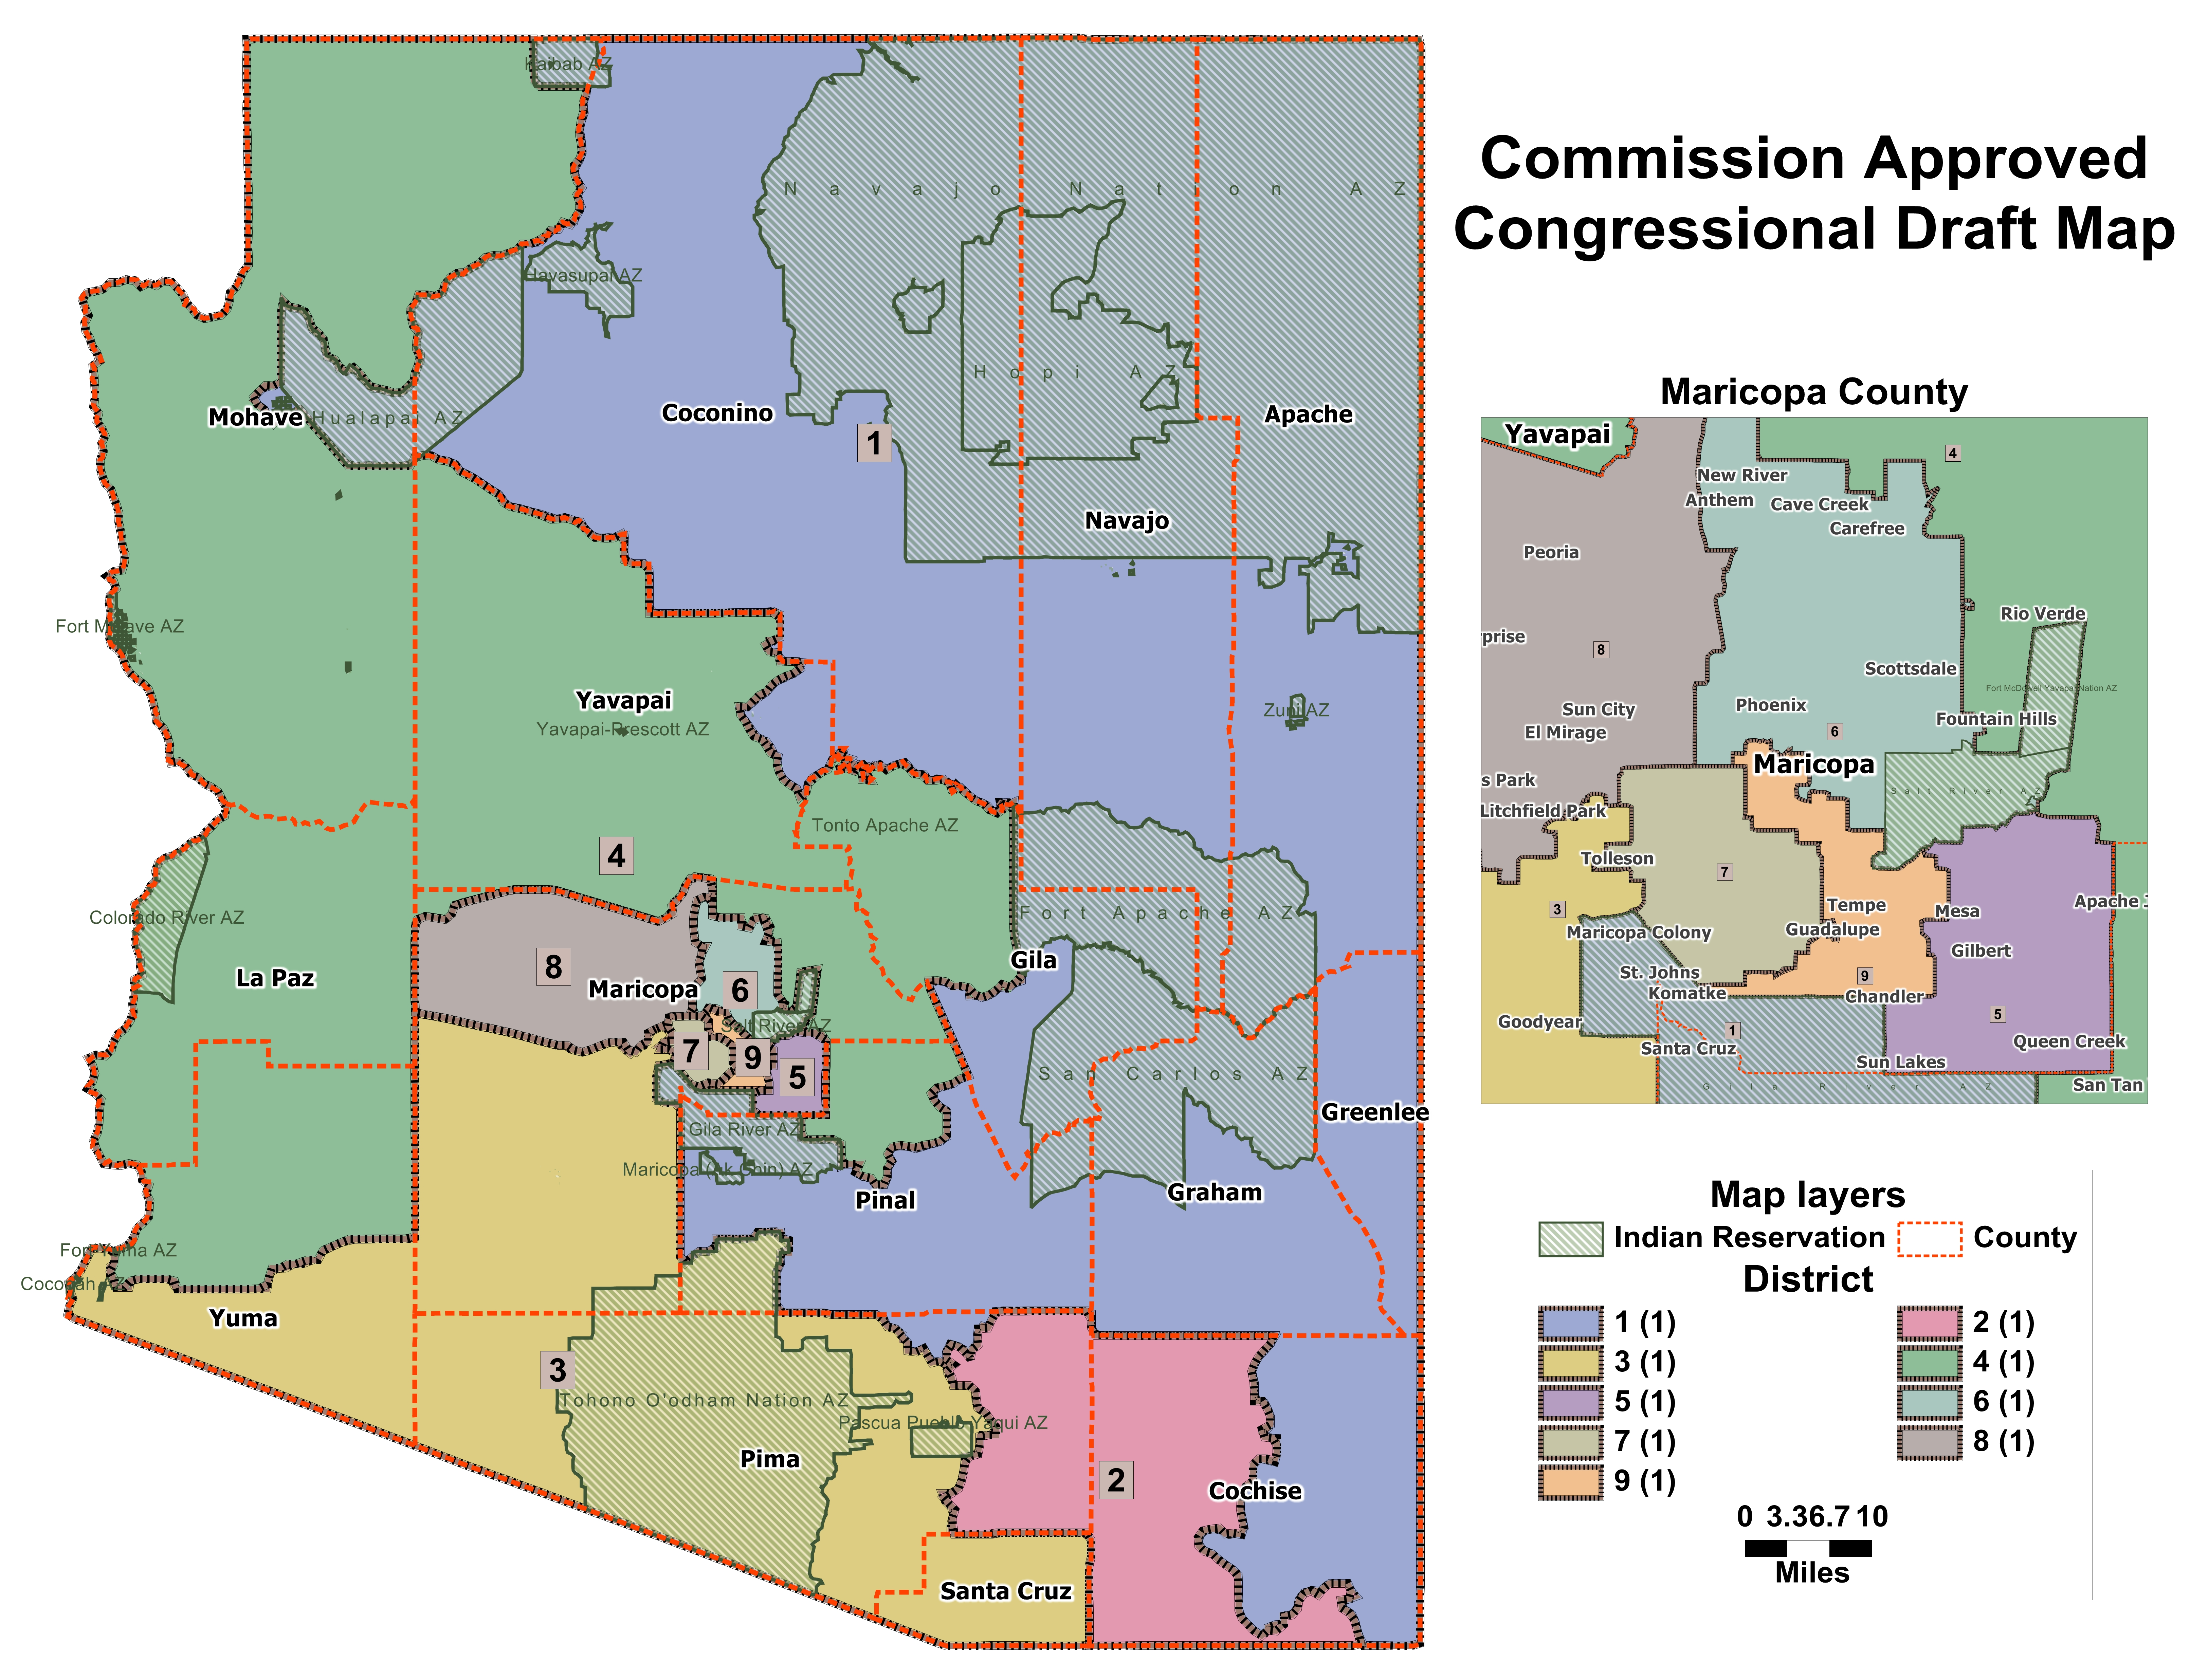 commission approved legislative draft map approved 10102011